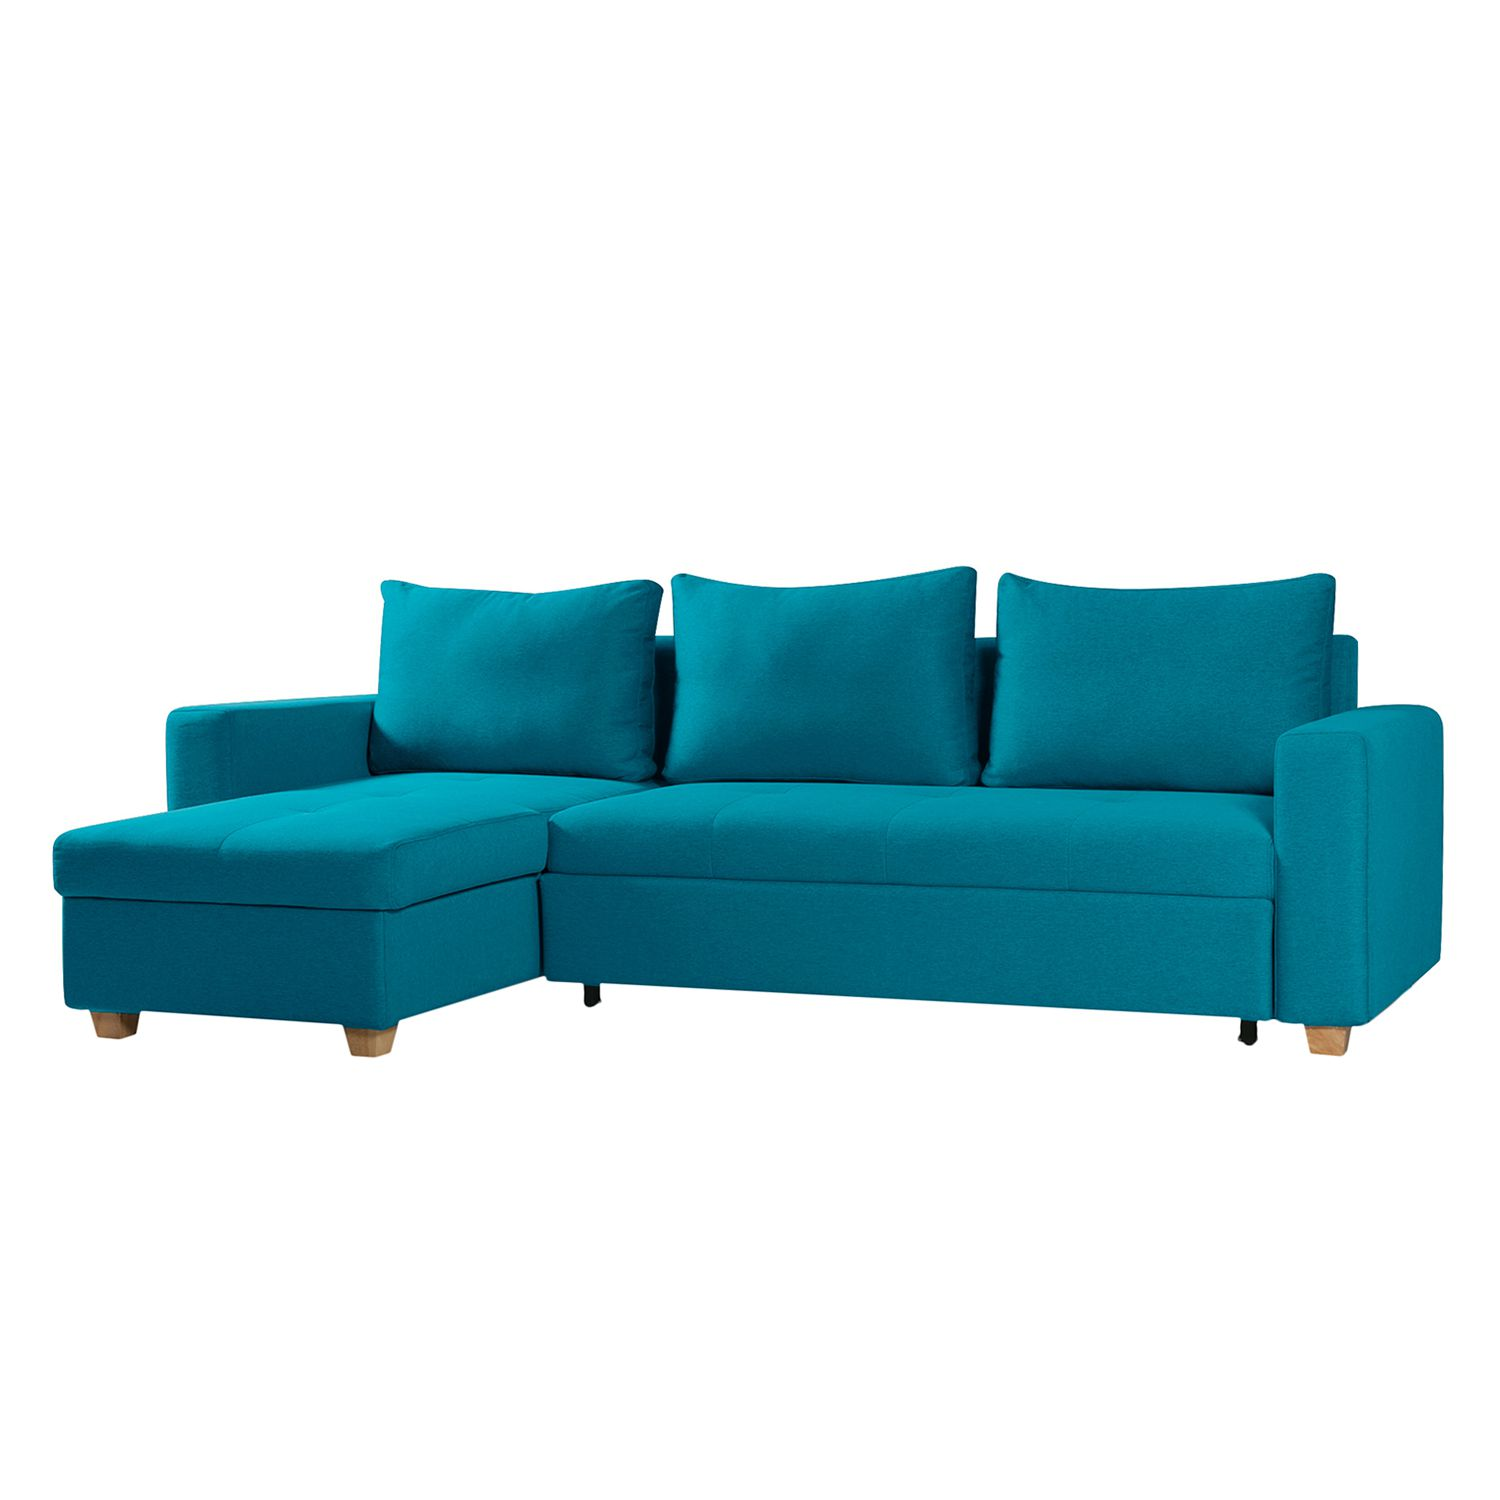 Canap d 39 angle crandon avec fonction couchage tissu for 2 canapes face a face